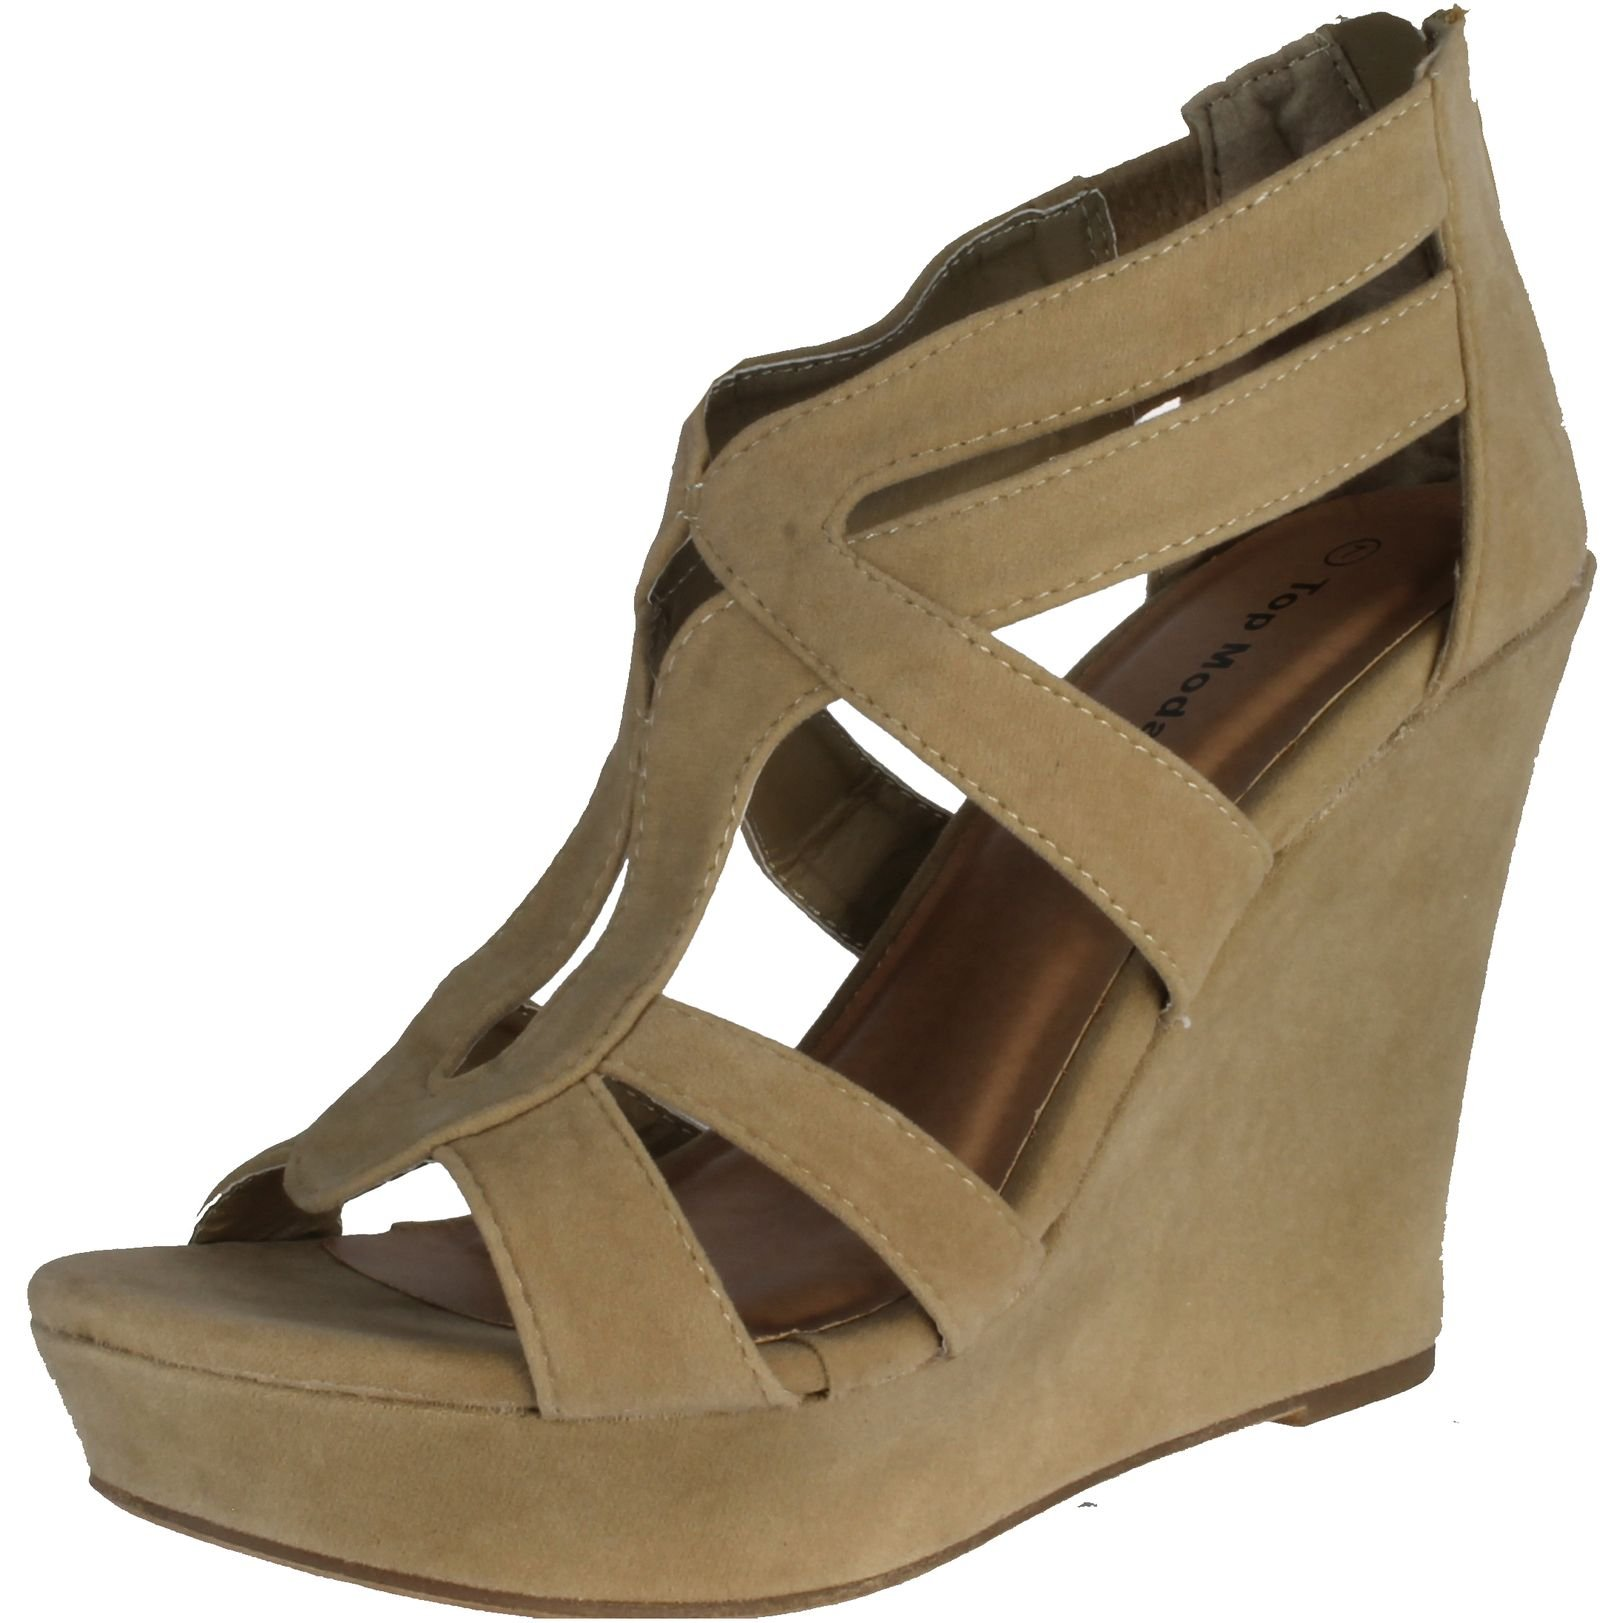 Top Moda Womens Lindy-66 Open Toe Platform Wedge Sandals,Taupe,7.5